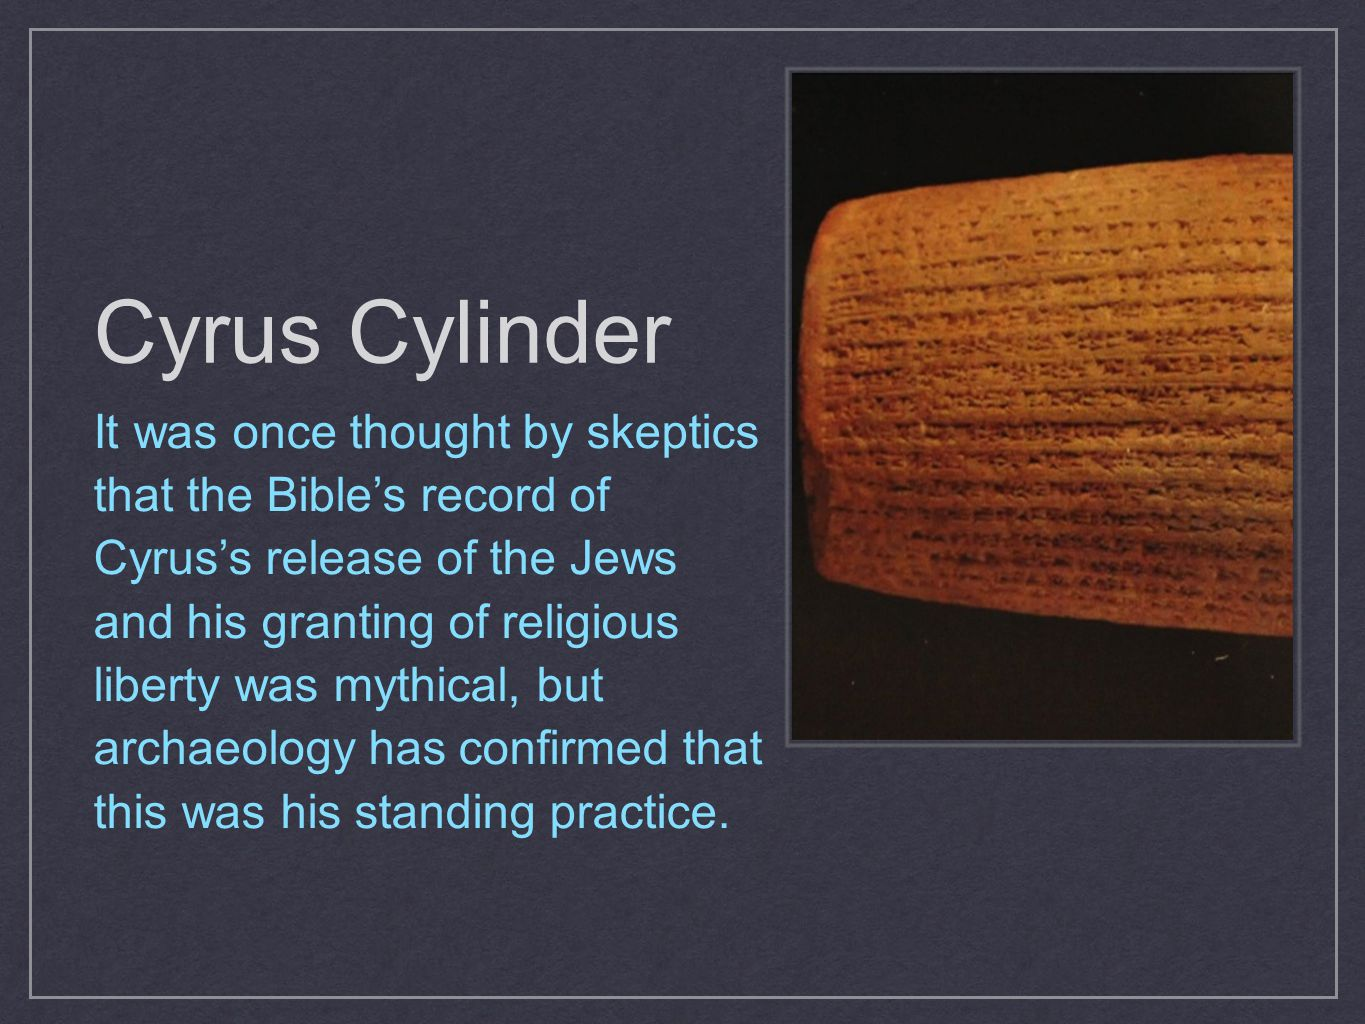 It was once thought by skeptics that the Bible's record of Cyrus's release of the Jews and his granting of religious liberty was mythical, but archaeo